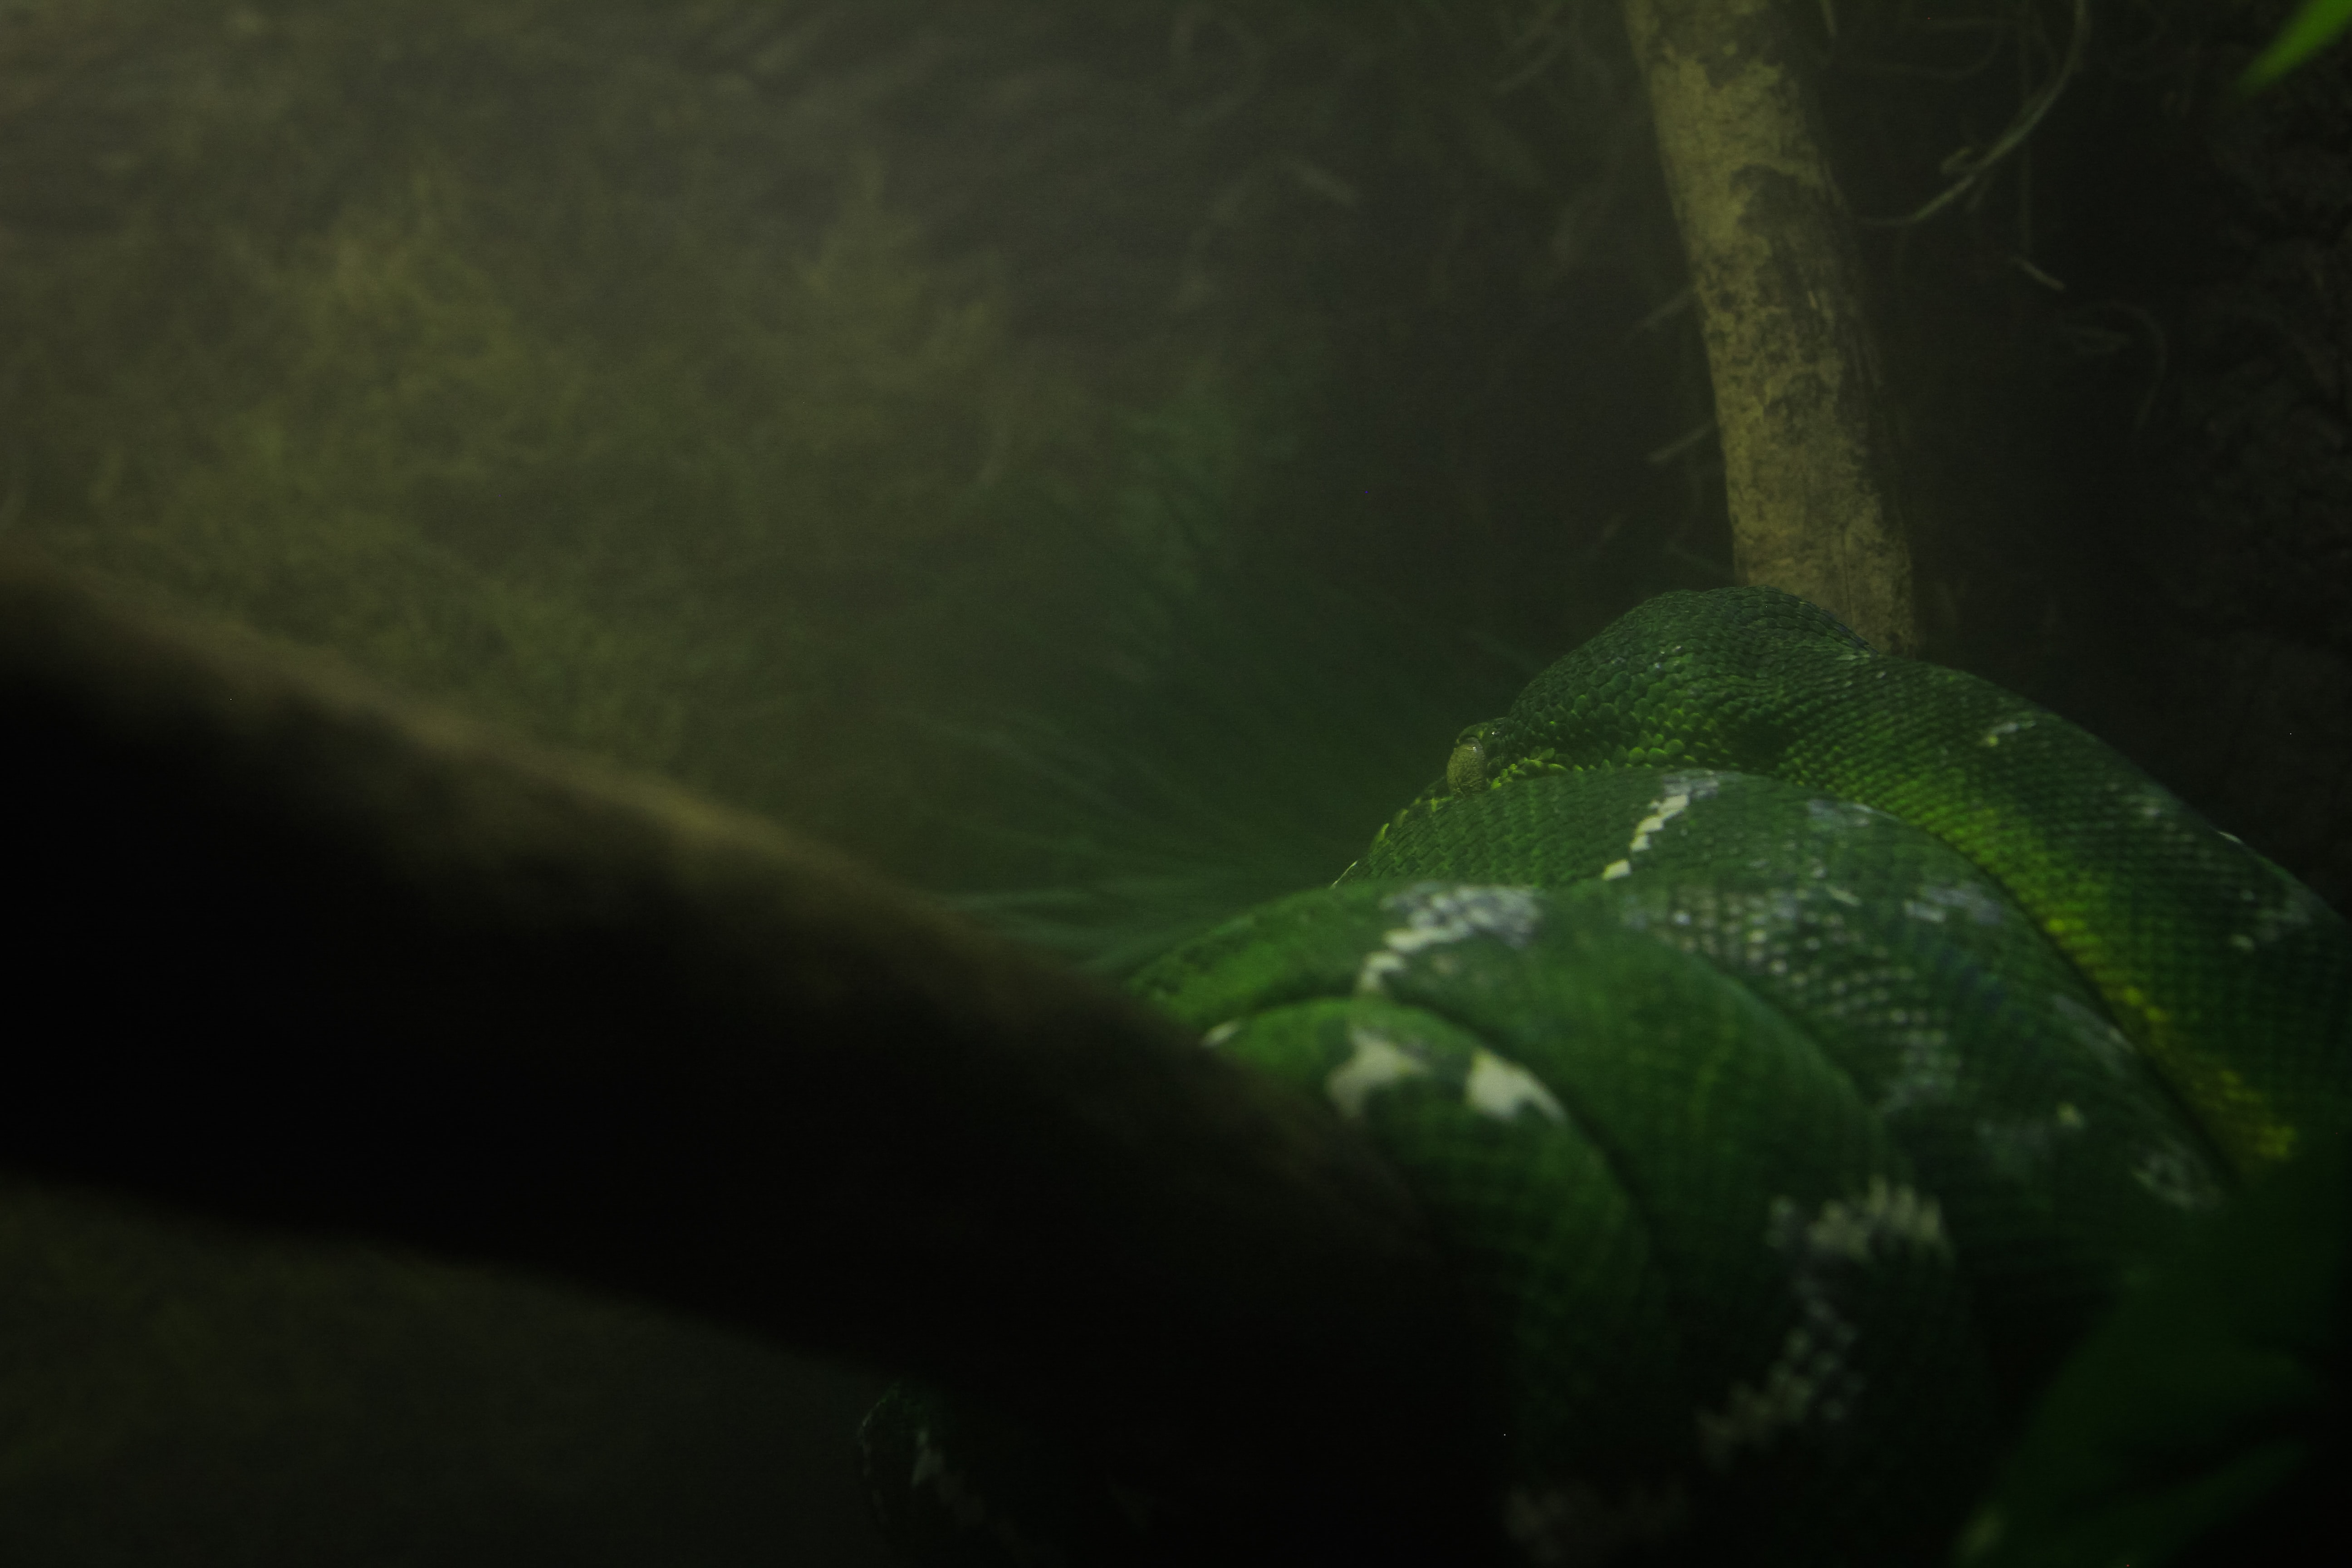 green and white snake